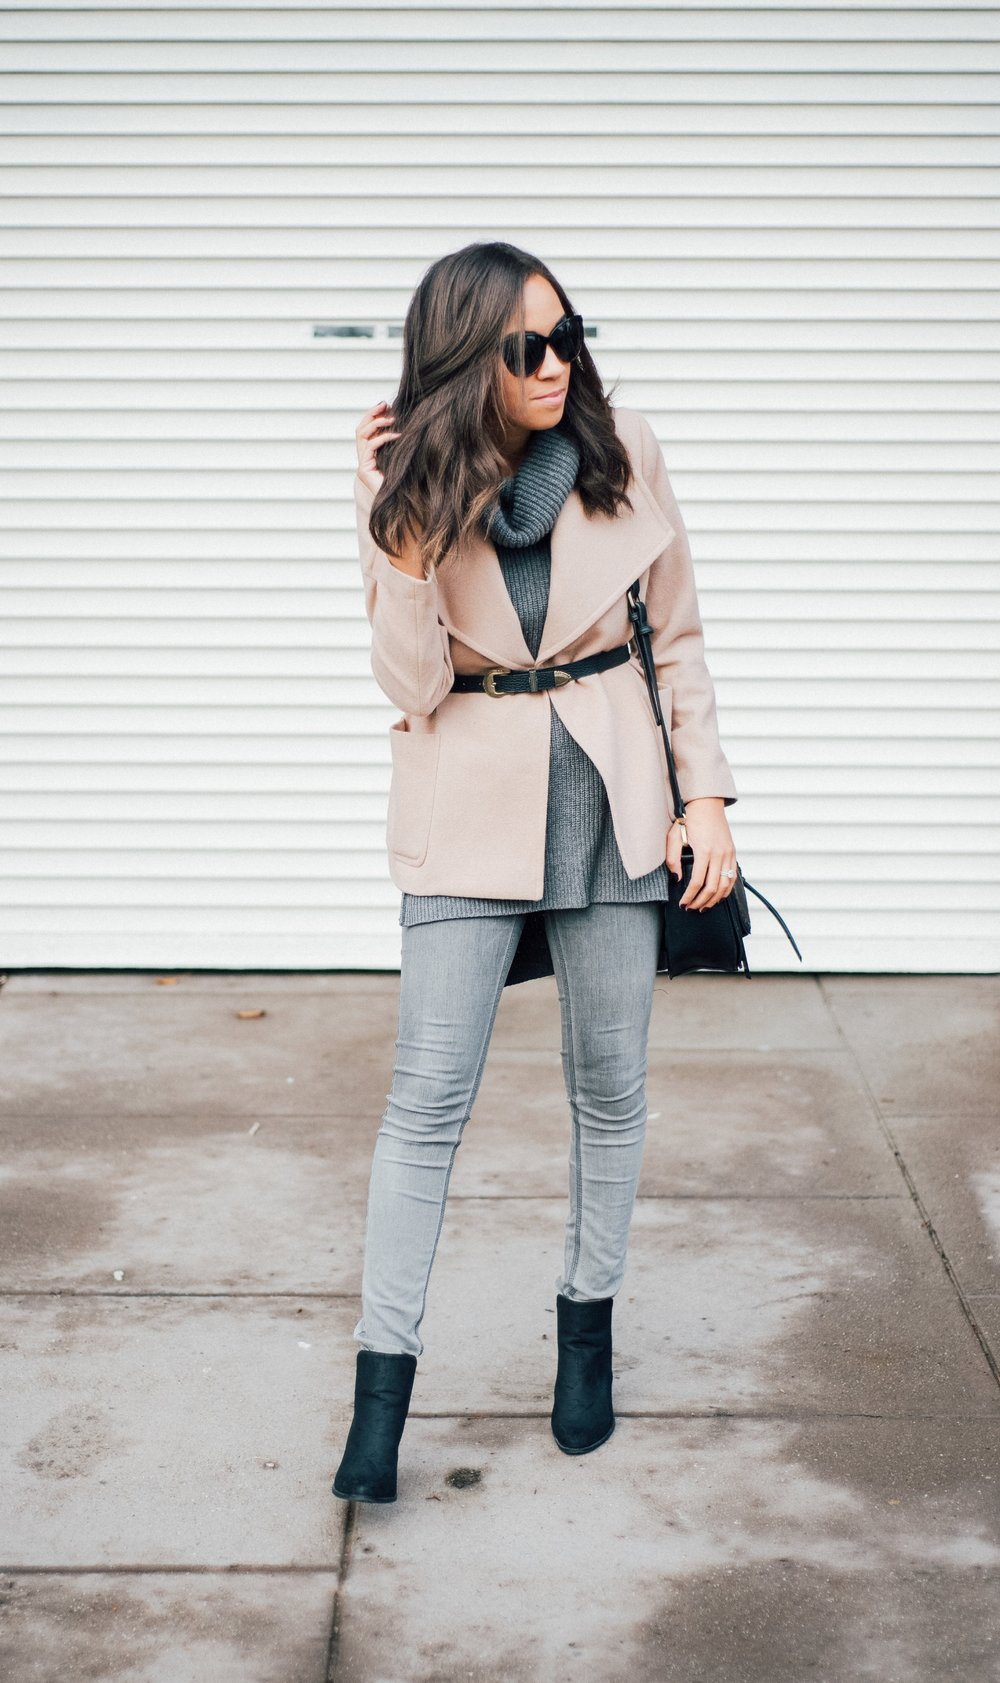 Grey Turtleneck Sweater + Vintage Belt 37.jpg